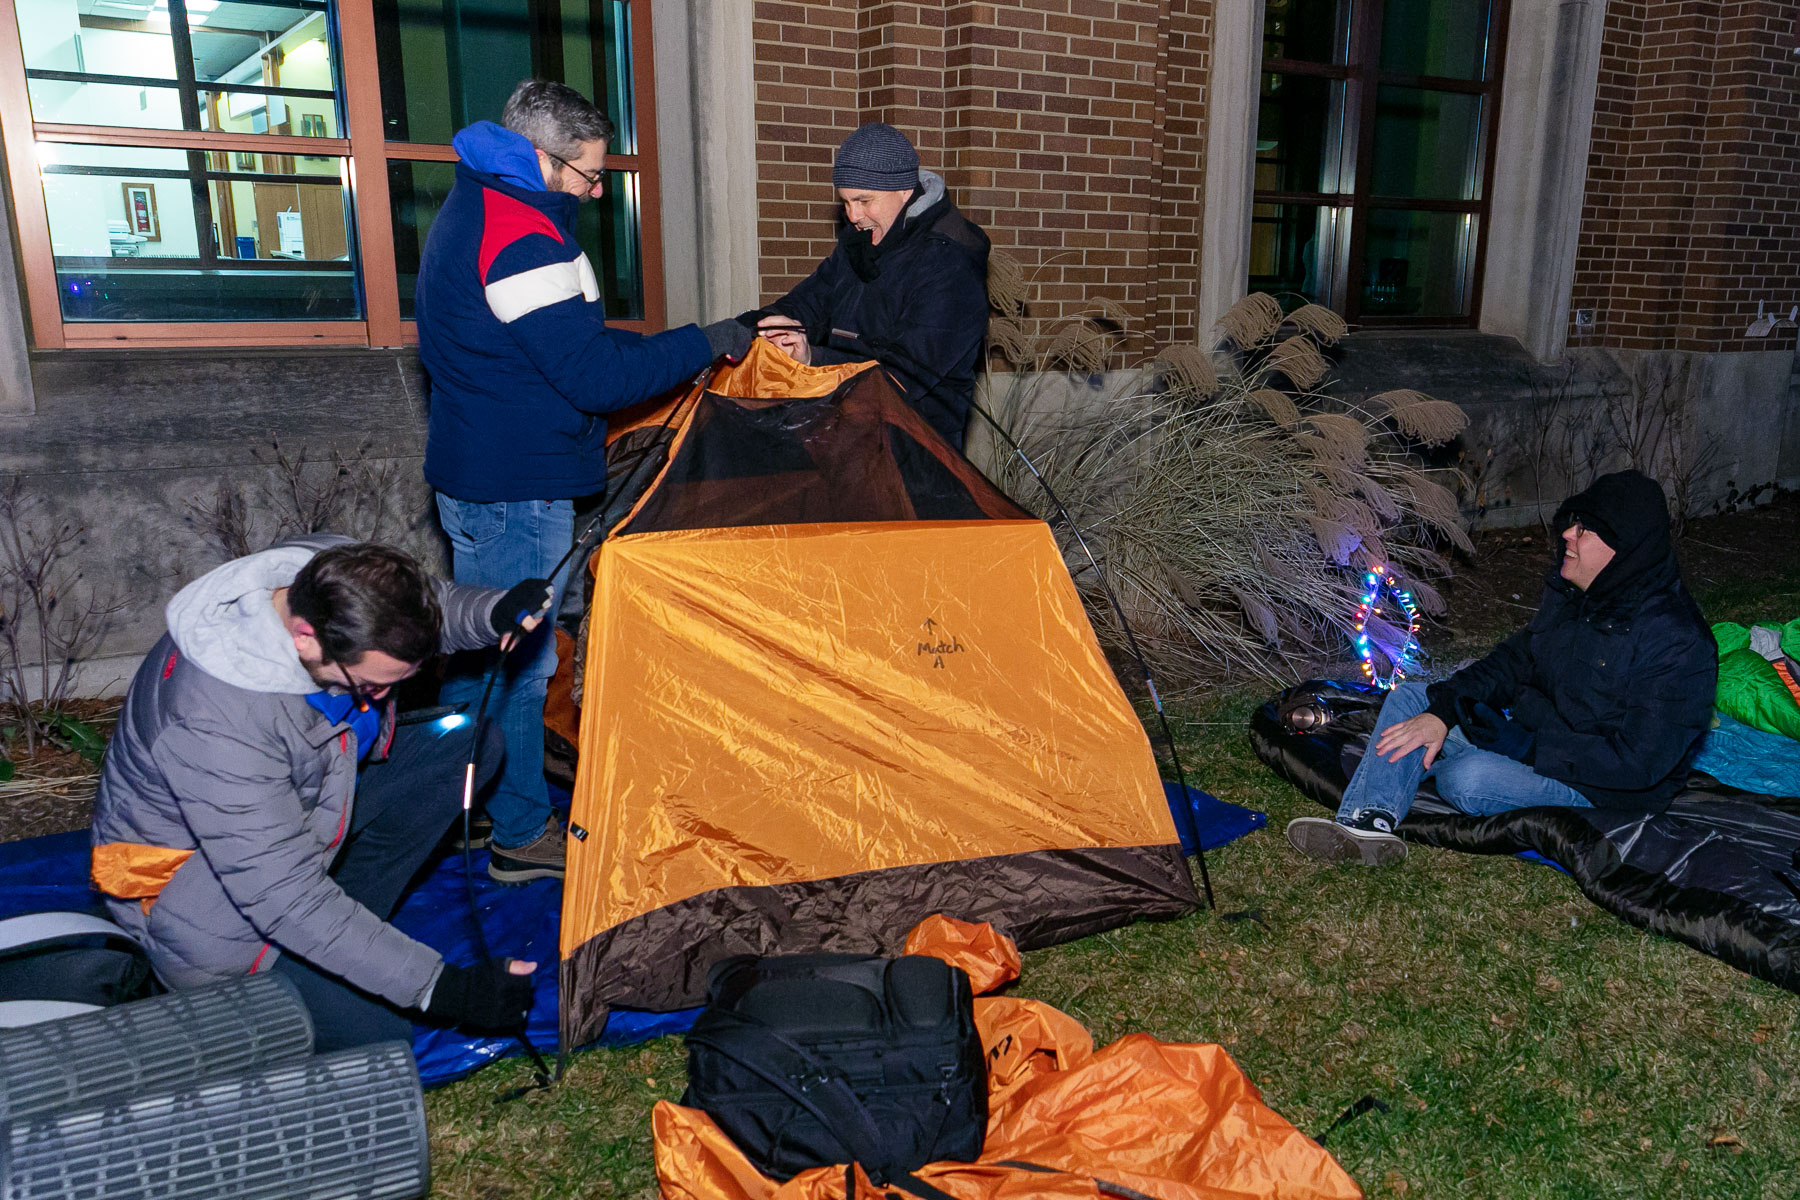 About 75 people braved the wind and cold to sleep outside overnight. Chicago's wind chill factor made it feel like it was 23 degrees, coming in a close second to the chill in Kharkiv, Ukraine, which also held a sleep out that night. (DePaul University/Randall Spriggs)